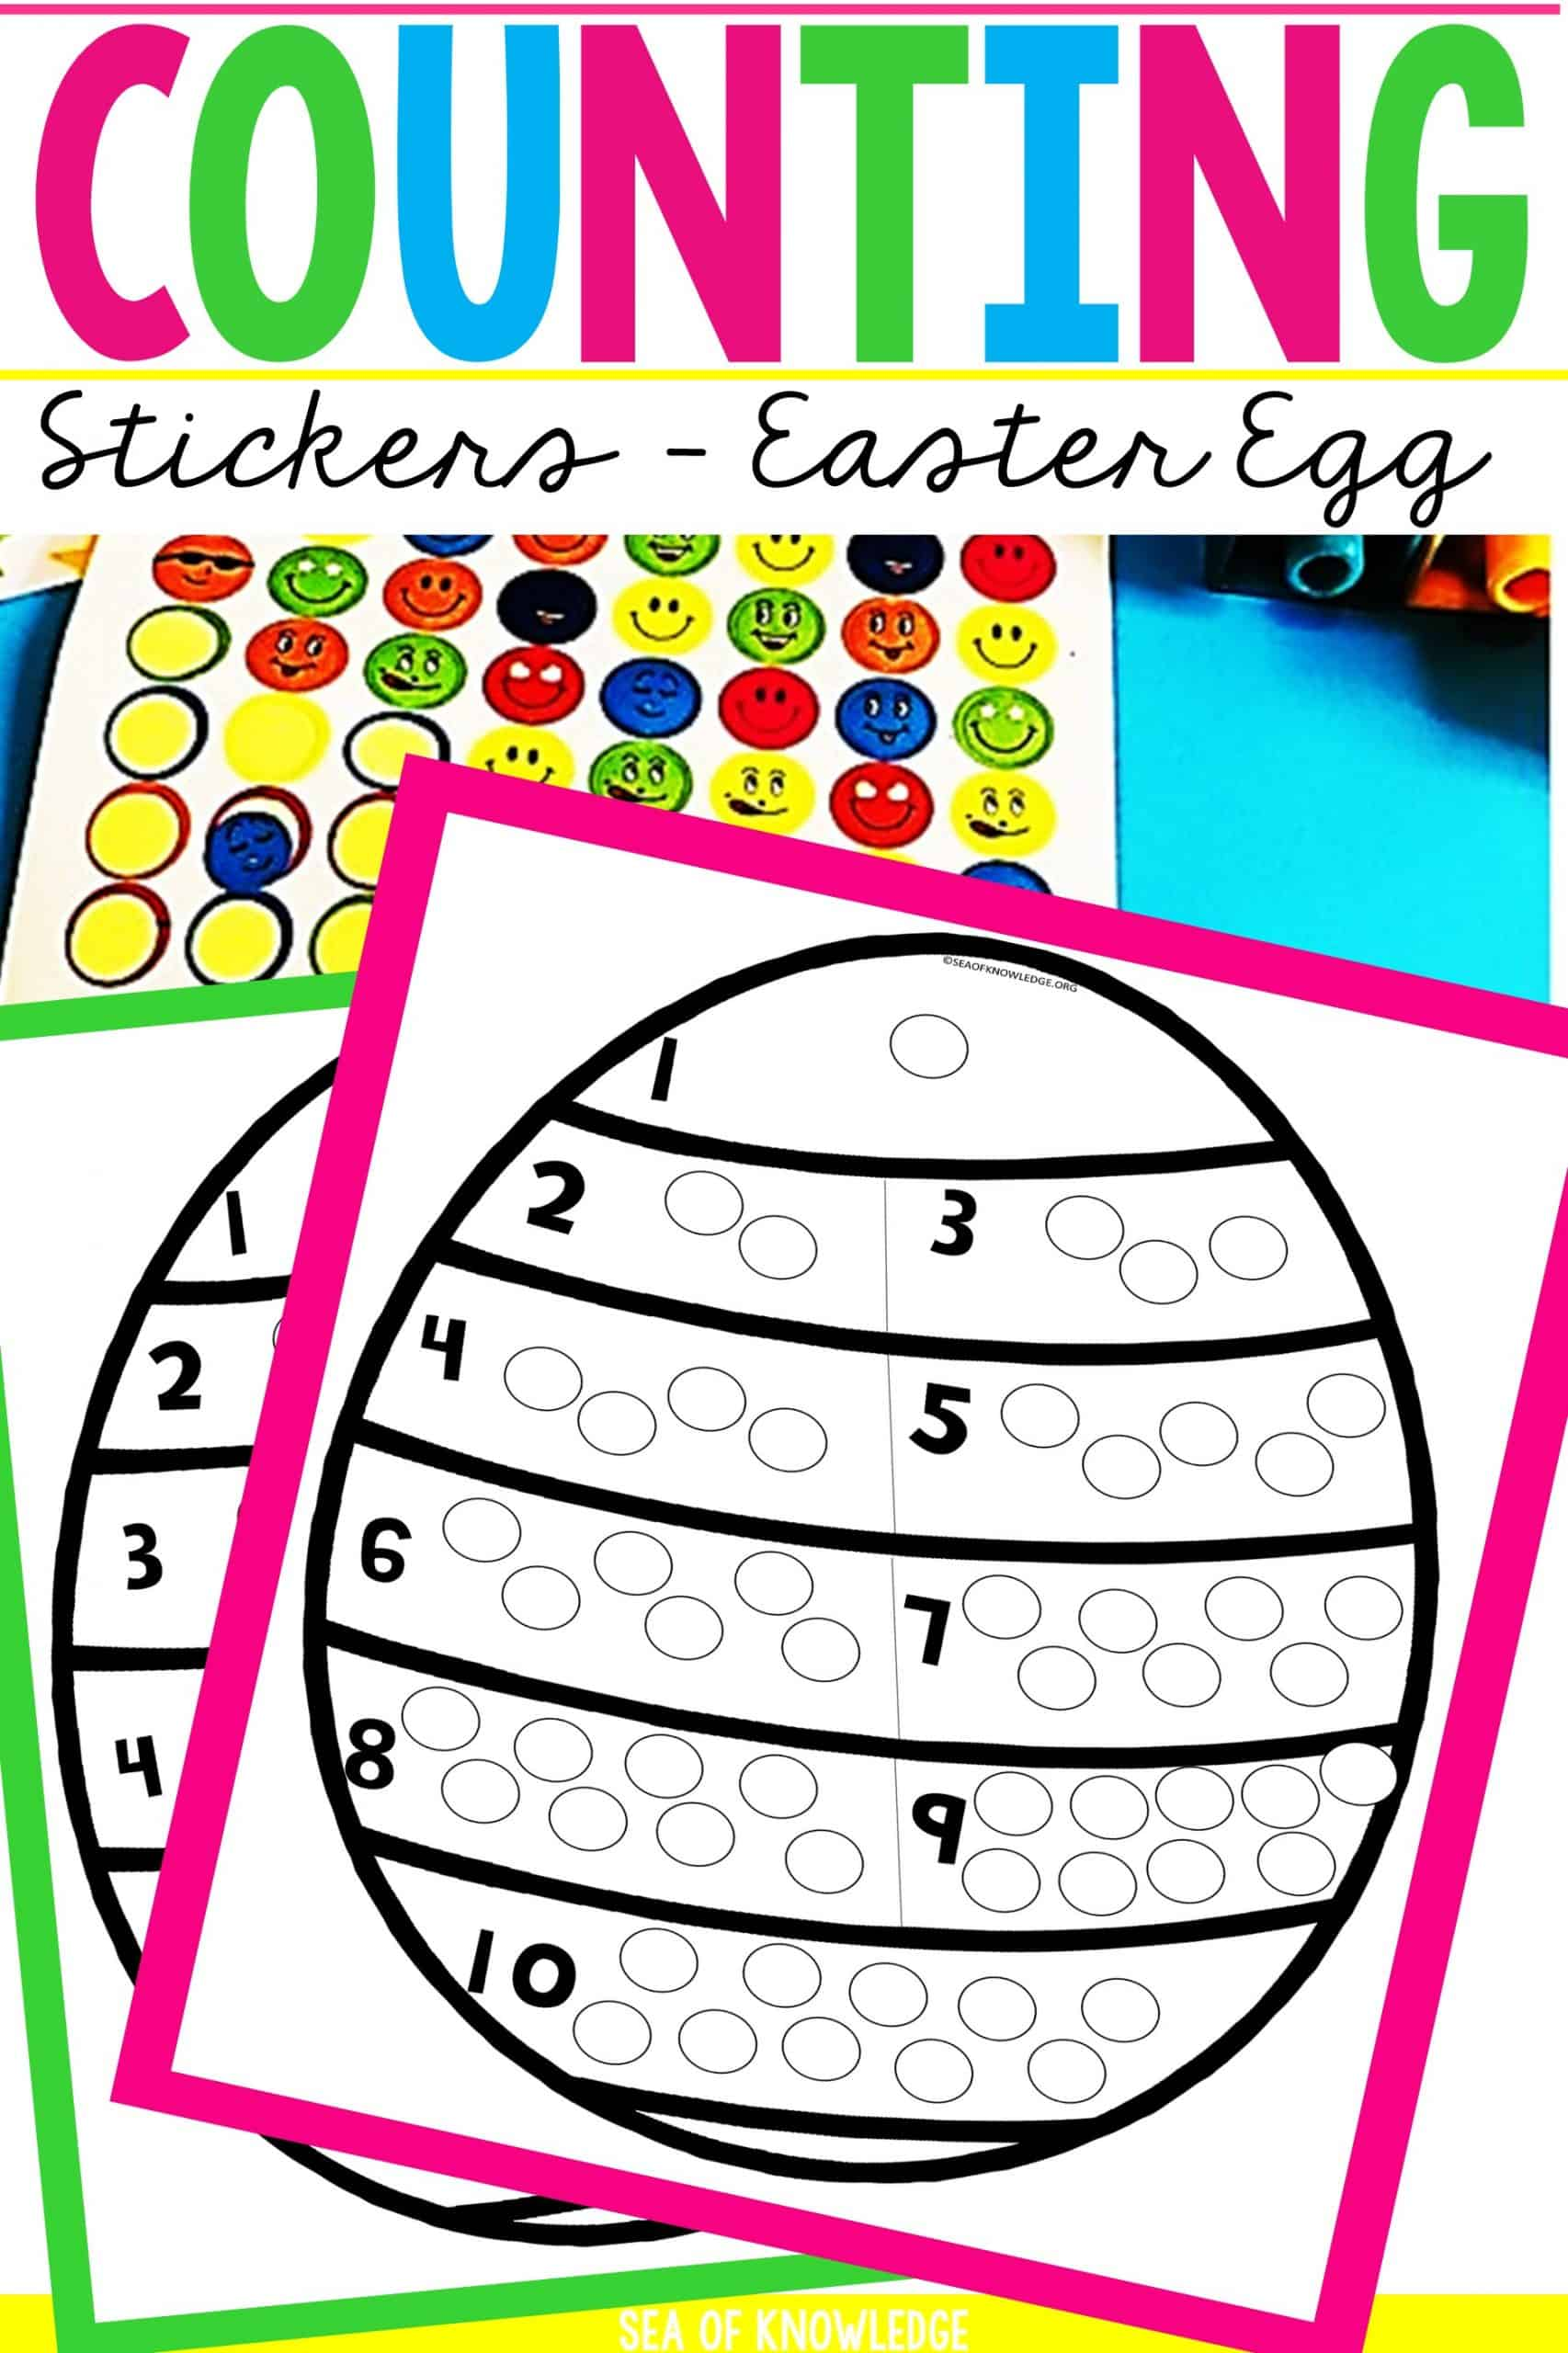 This Counting 1 to 10 Dot Stickers Easter Eggs activity will sure be a hit with your little learners! Looking for a fun way to get kids to count and show their numbers? These fun Easter egg themed printable cards are perfect for that. Learners will identify the number on each section and then place that many dot stickers to fill the 'dots on their Easter eggs to decorate them'.